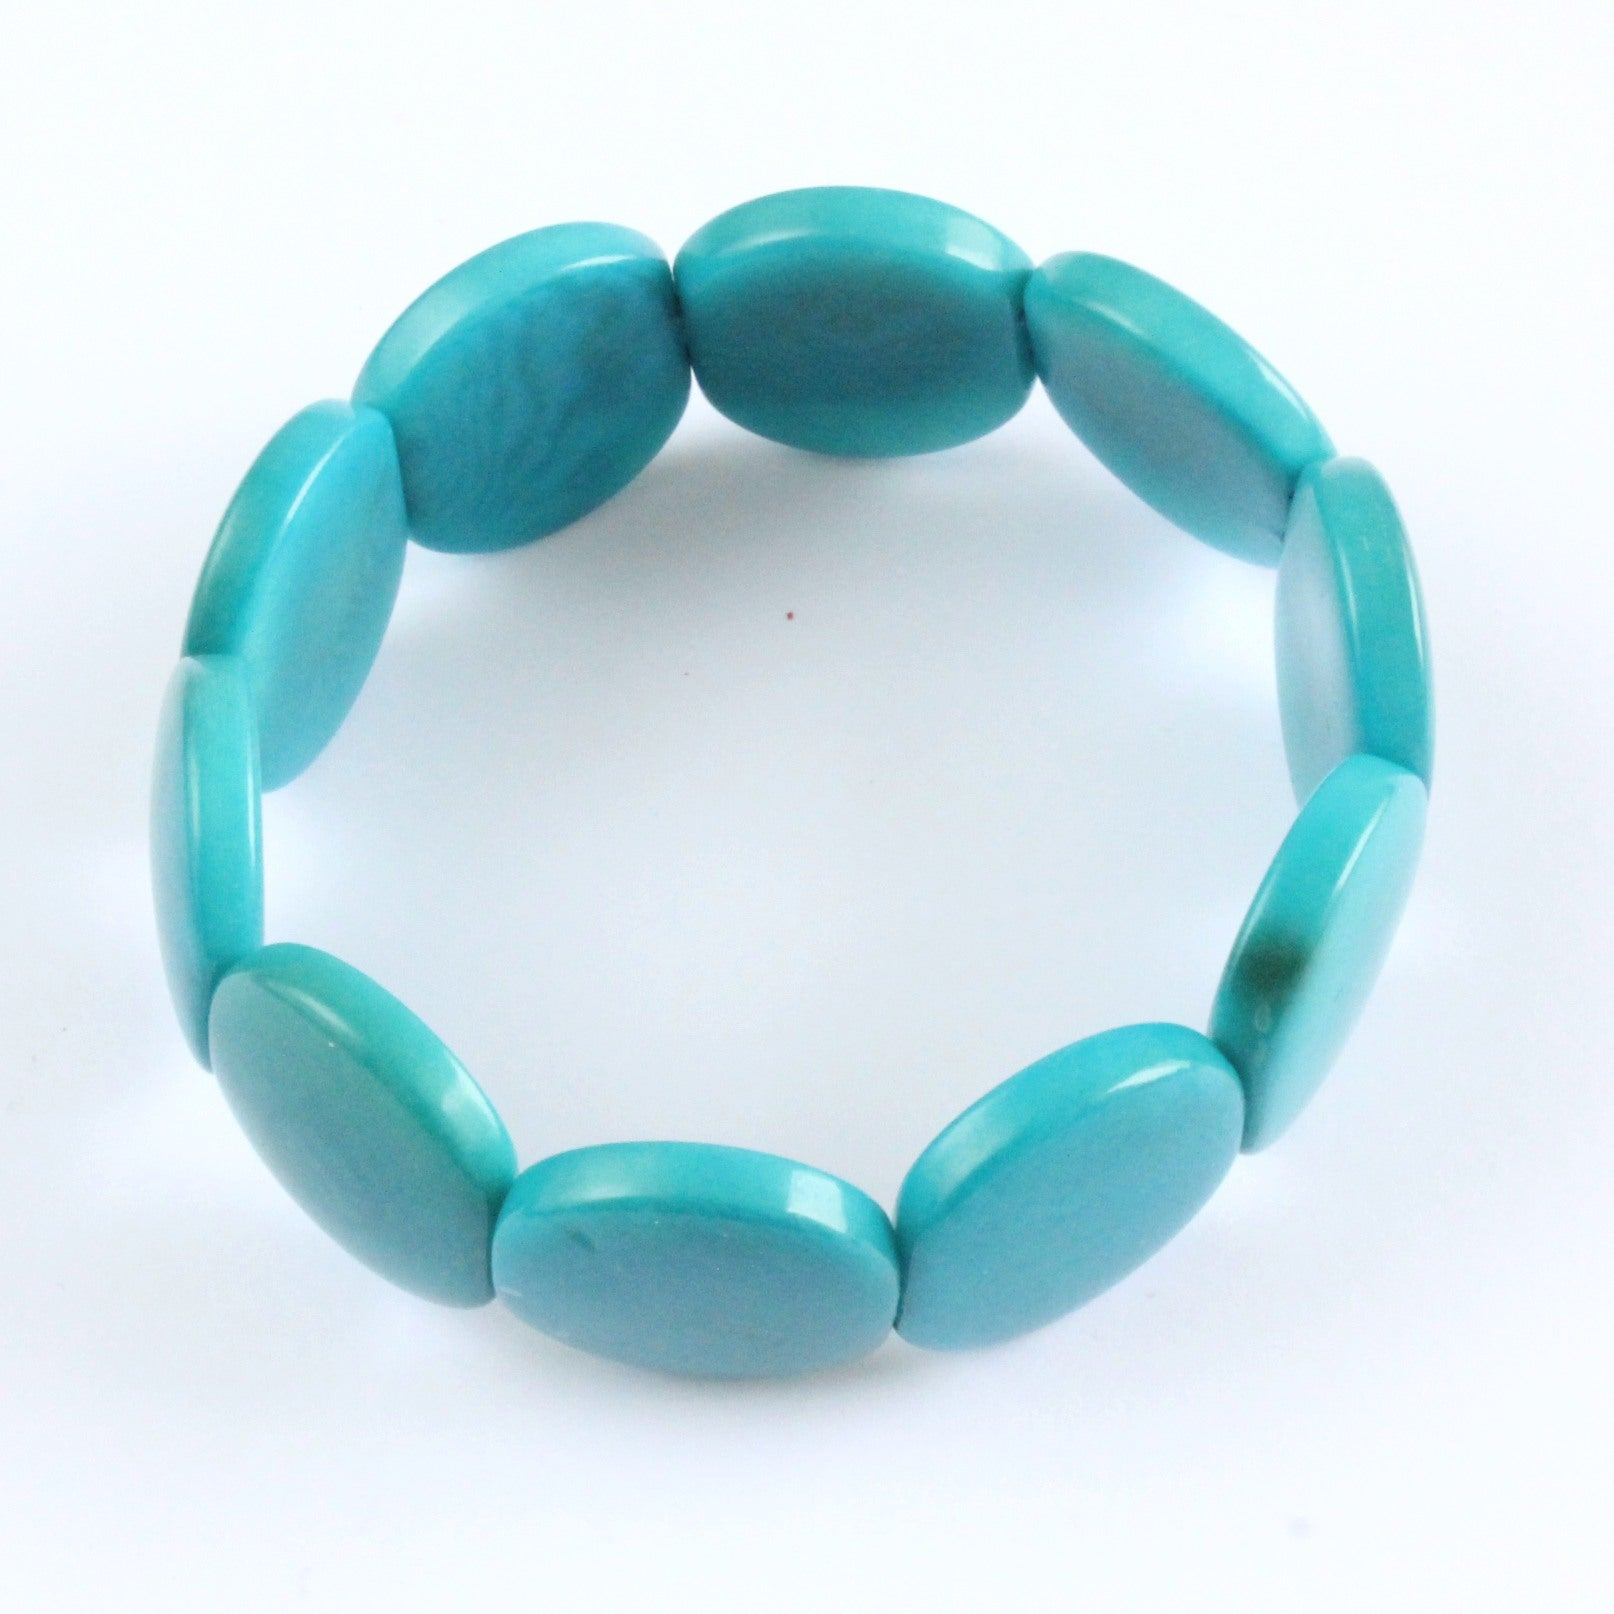 Handmade bracelet, tagua nut, sustainable,  colourful, turquoise